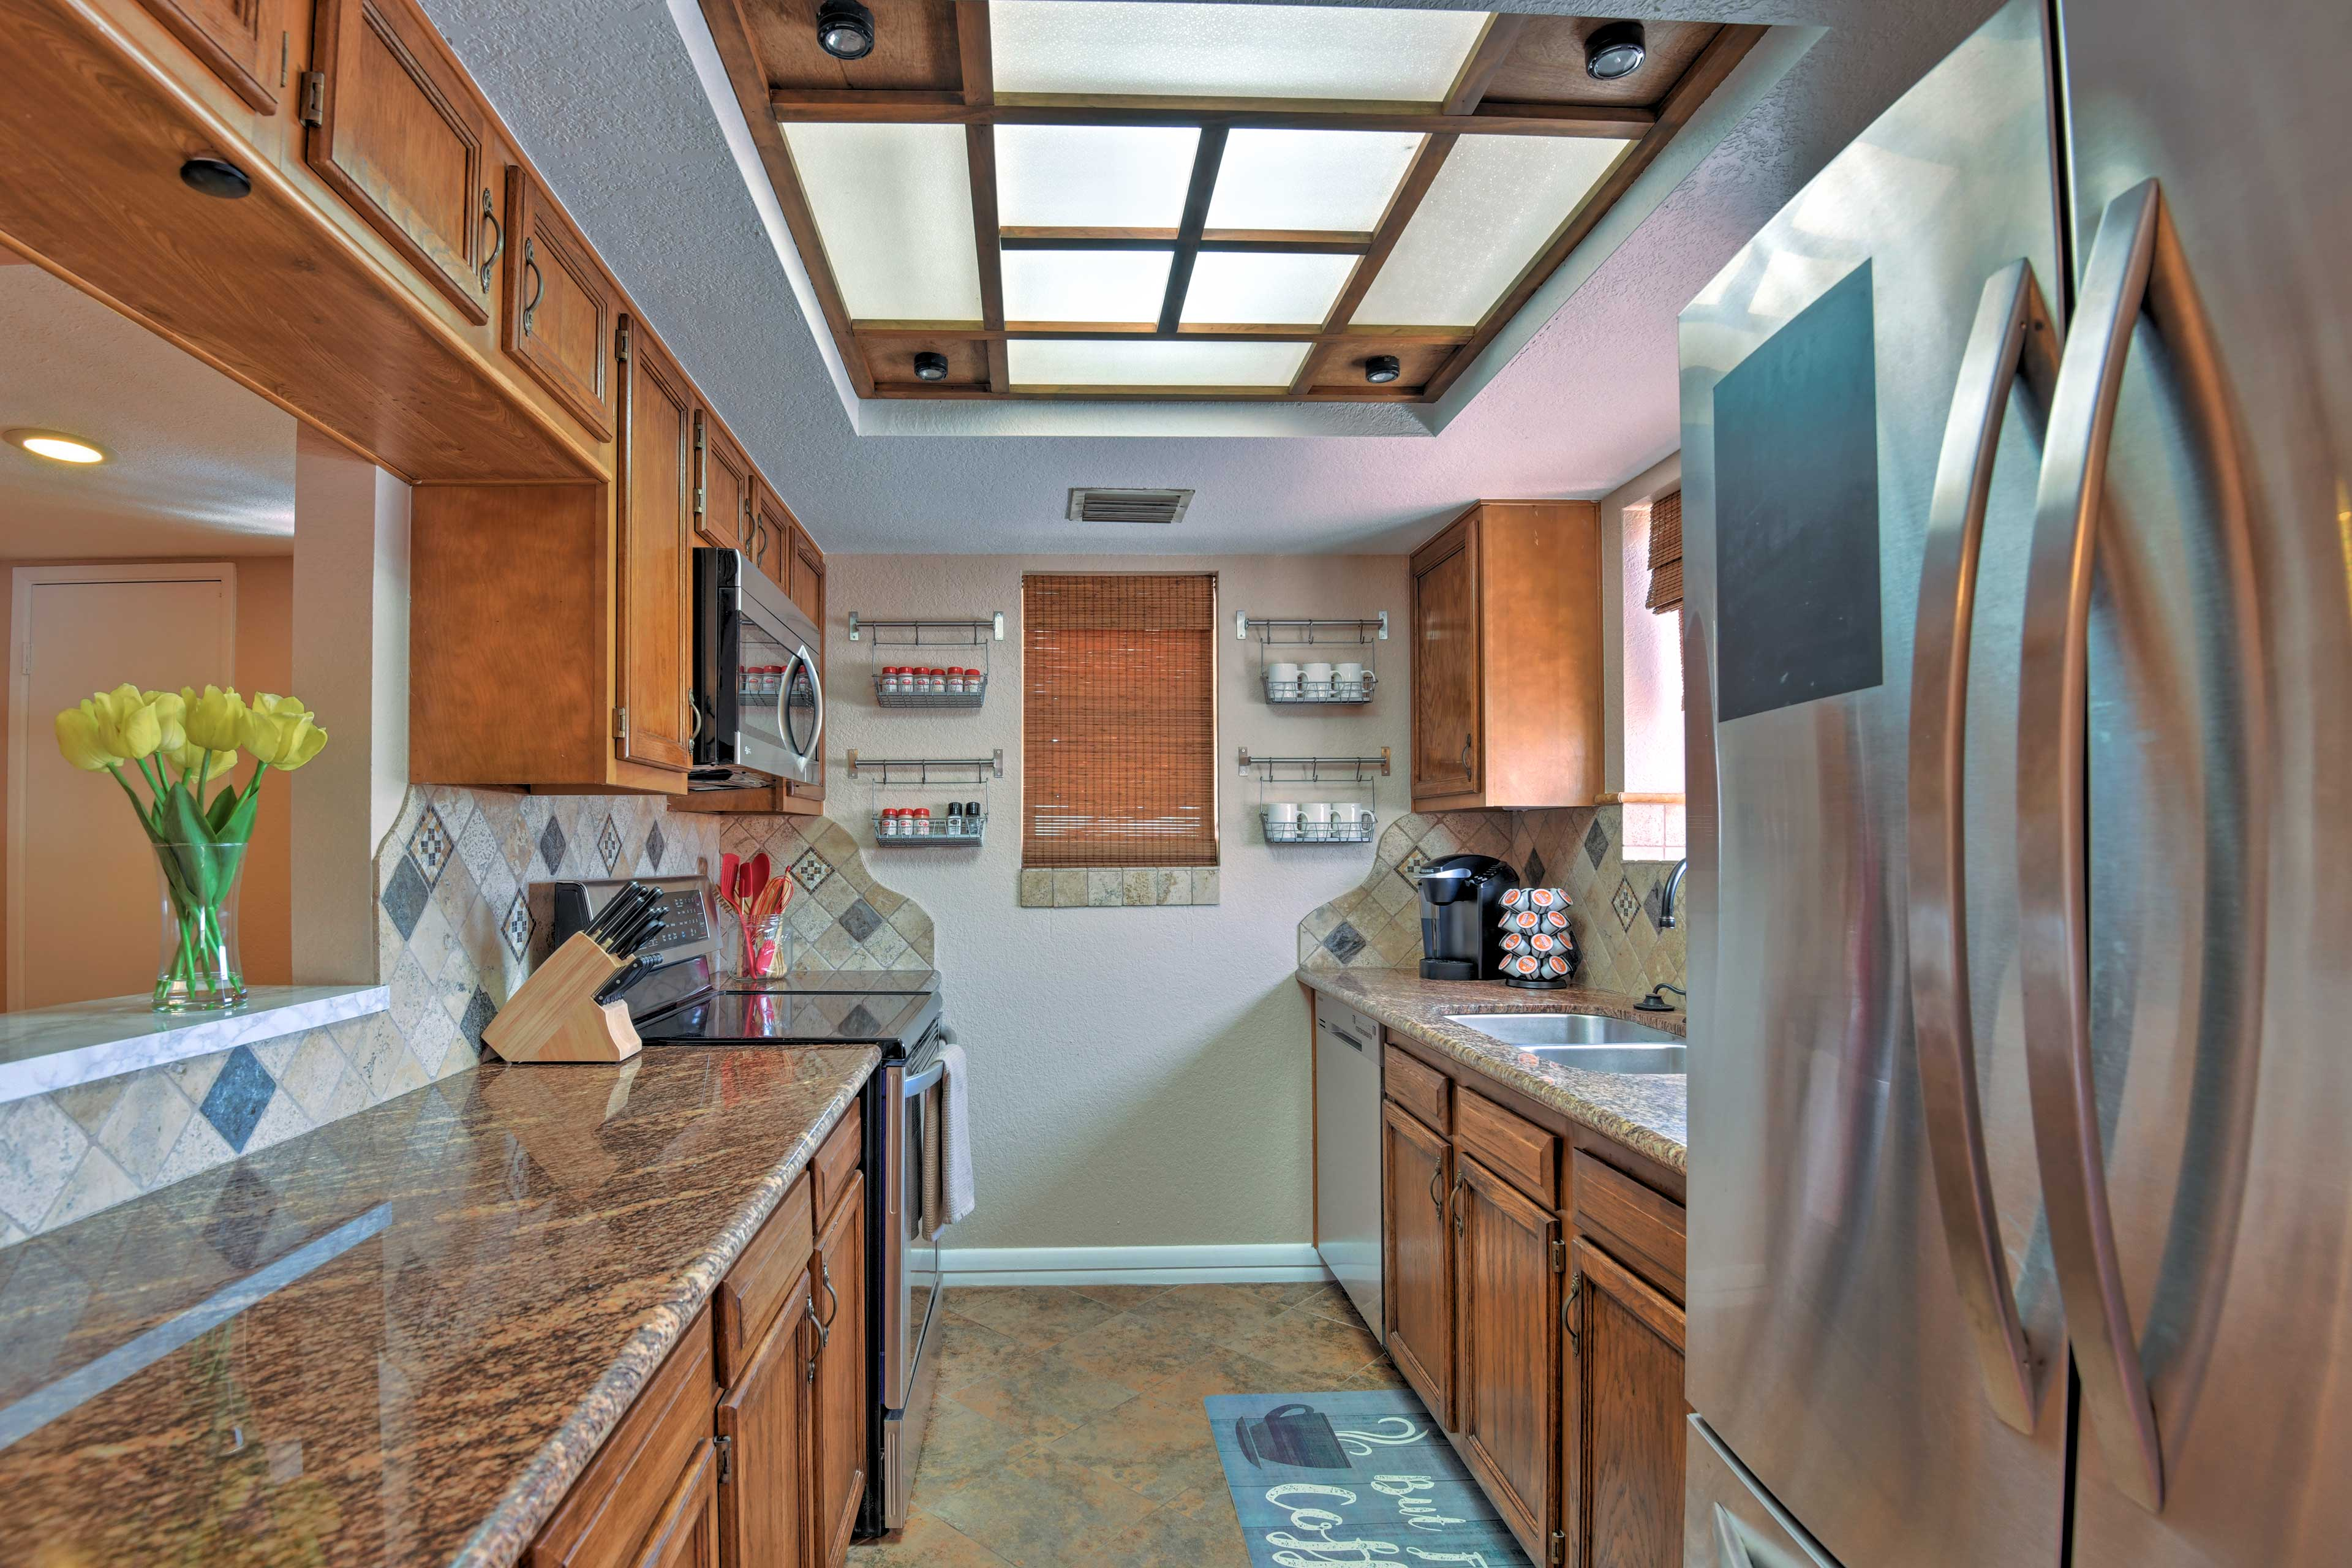 The galley-style fully equipped kitchen is perfect for at-home cooking.